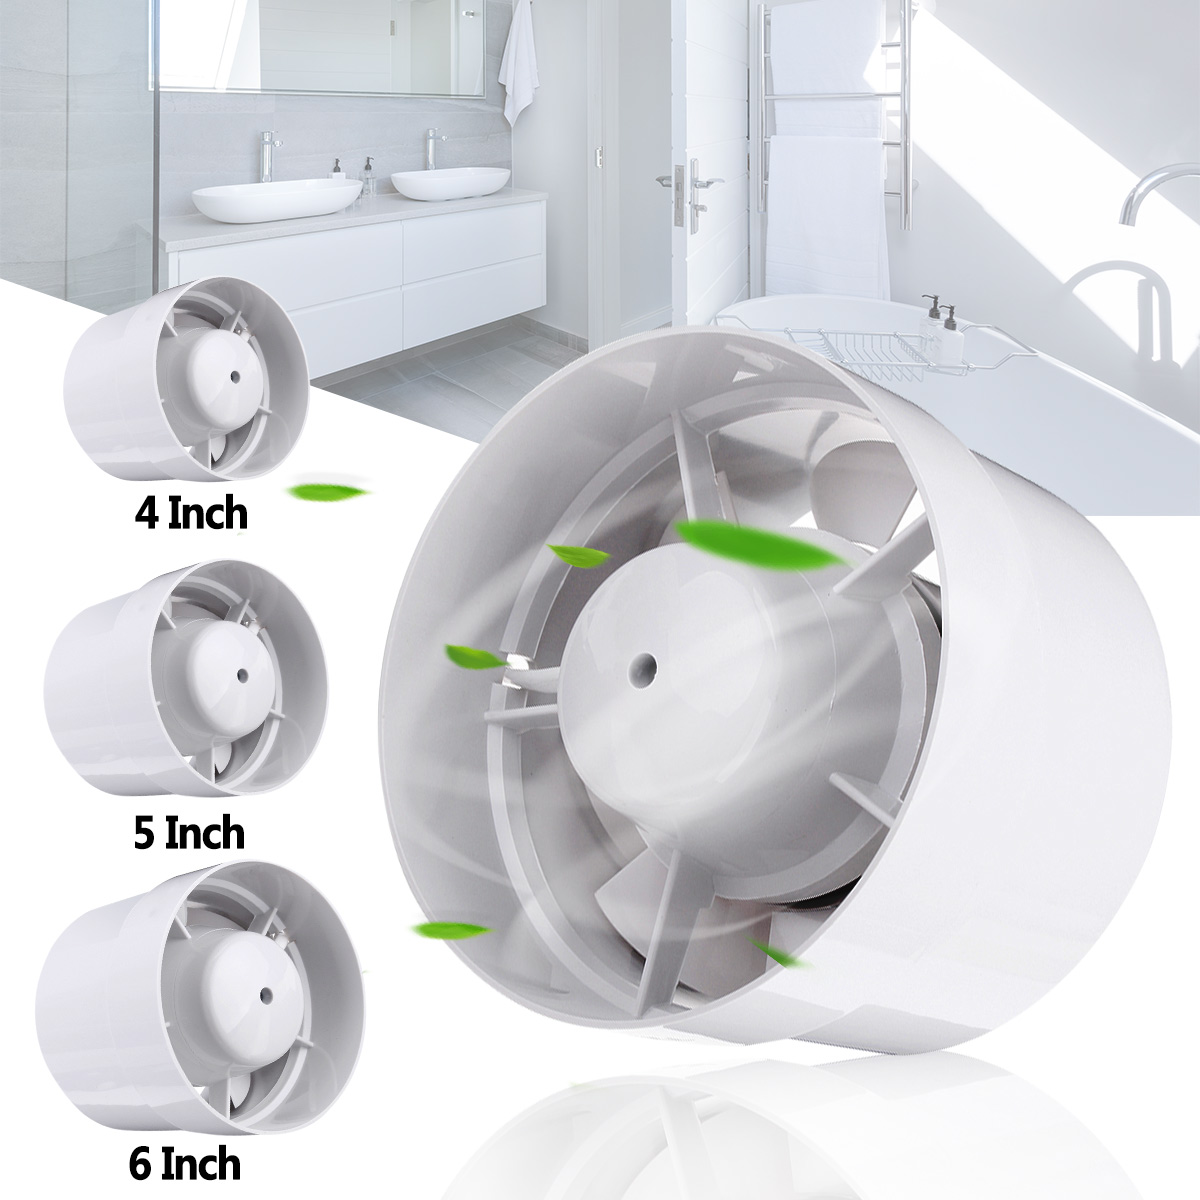 4/5/6 Inch Ducting Hydroponic Exhaust Ventilation Vent Circulation Fan Inline Dusted Blower Kitchen Wall Ceiling Exhauster Fan